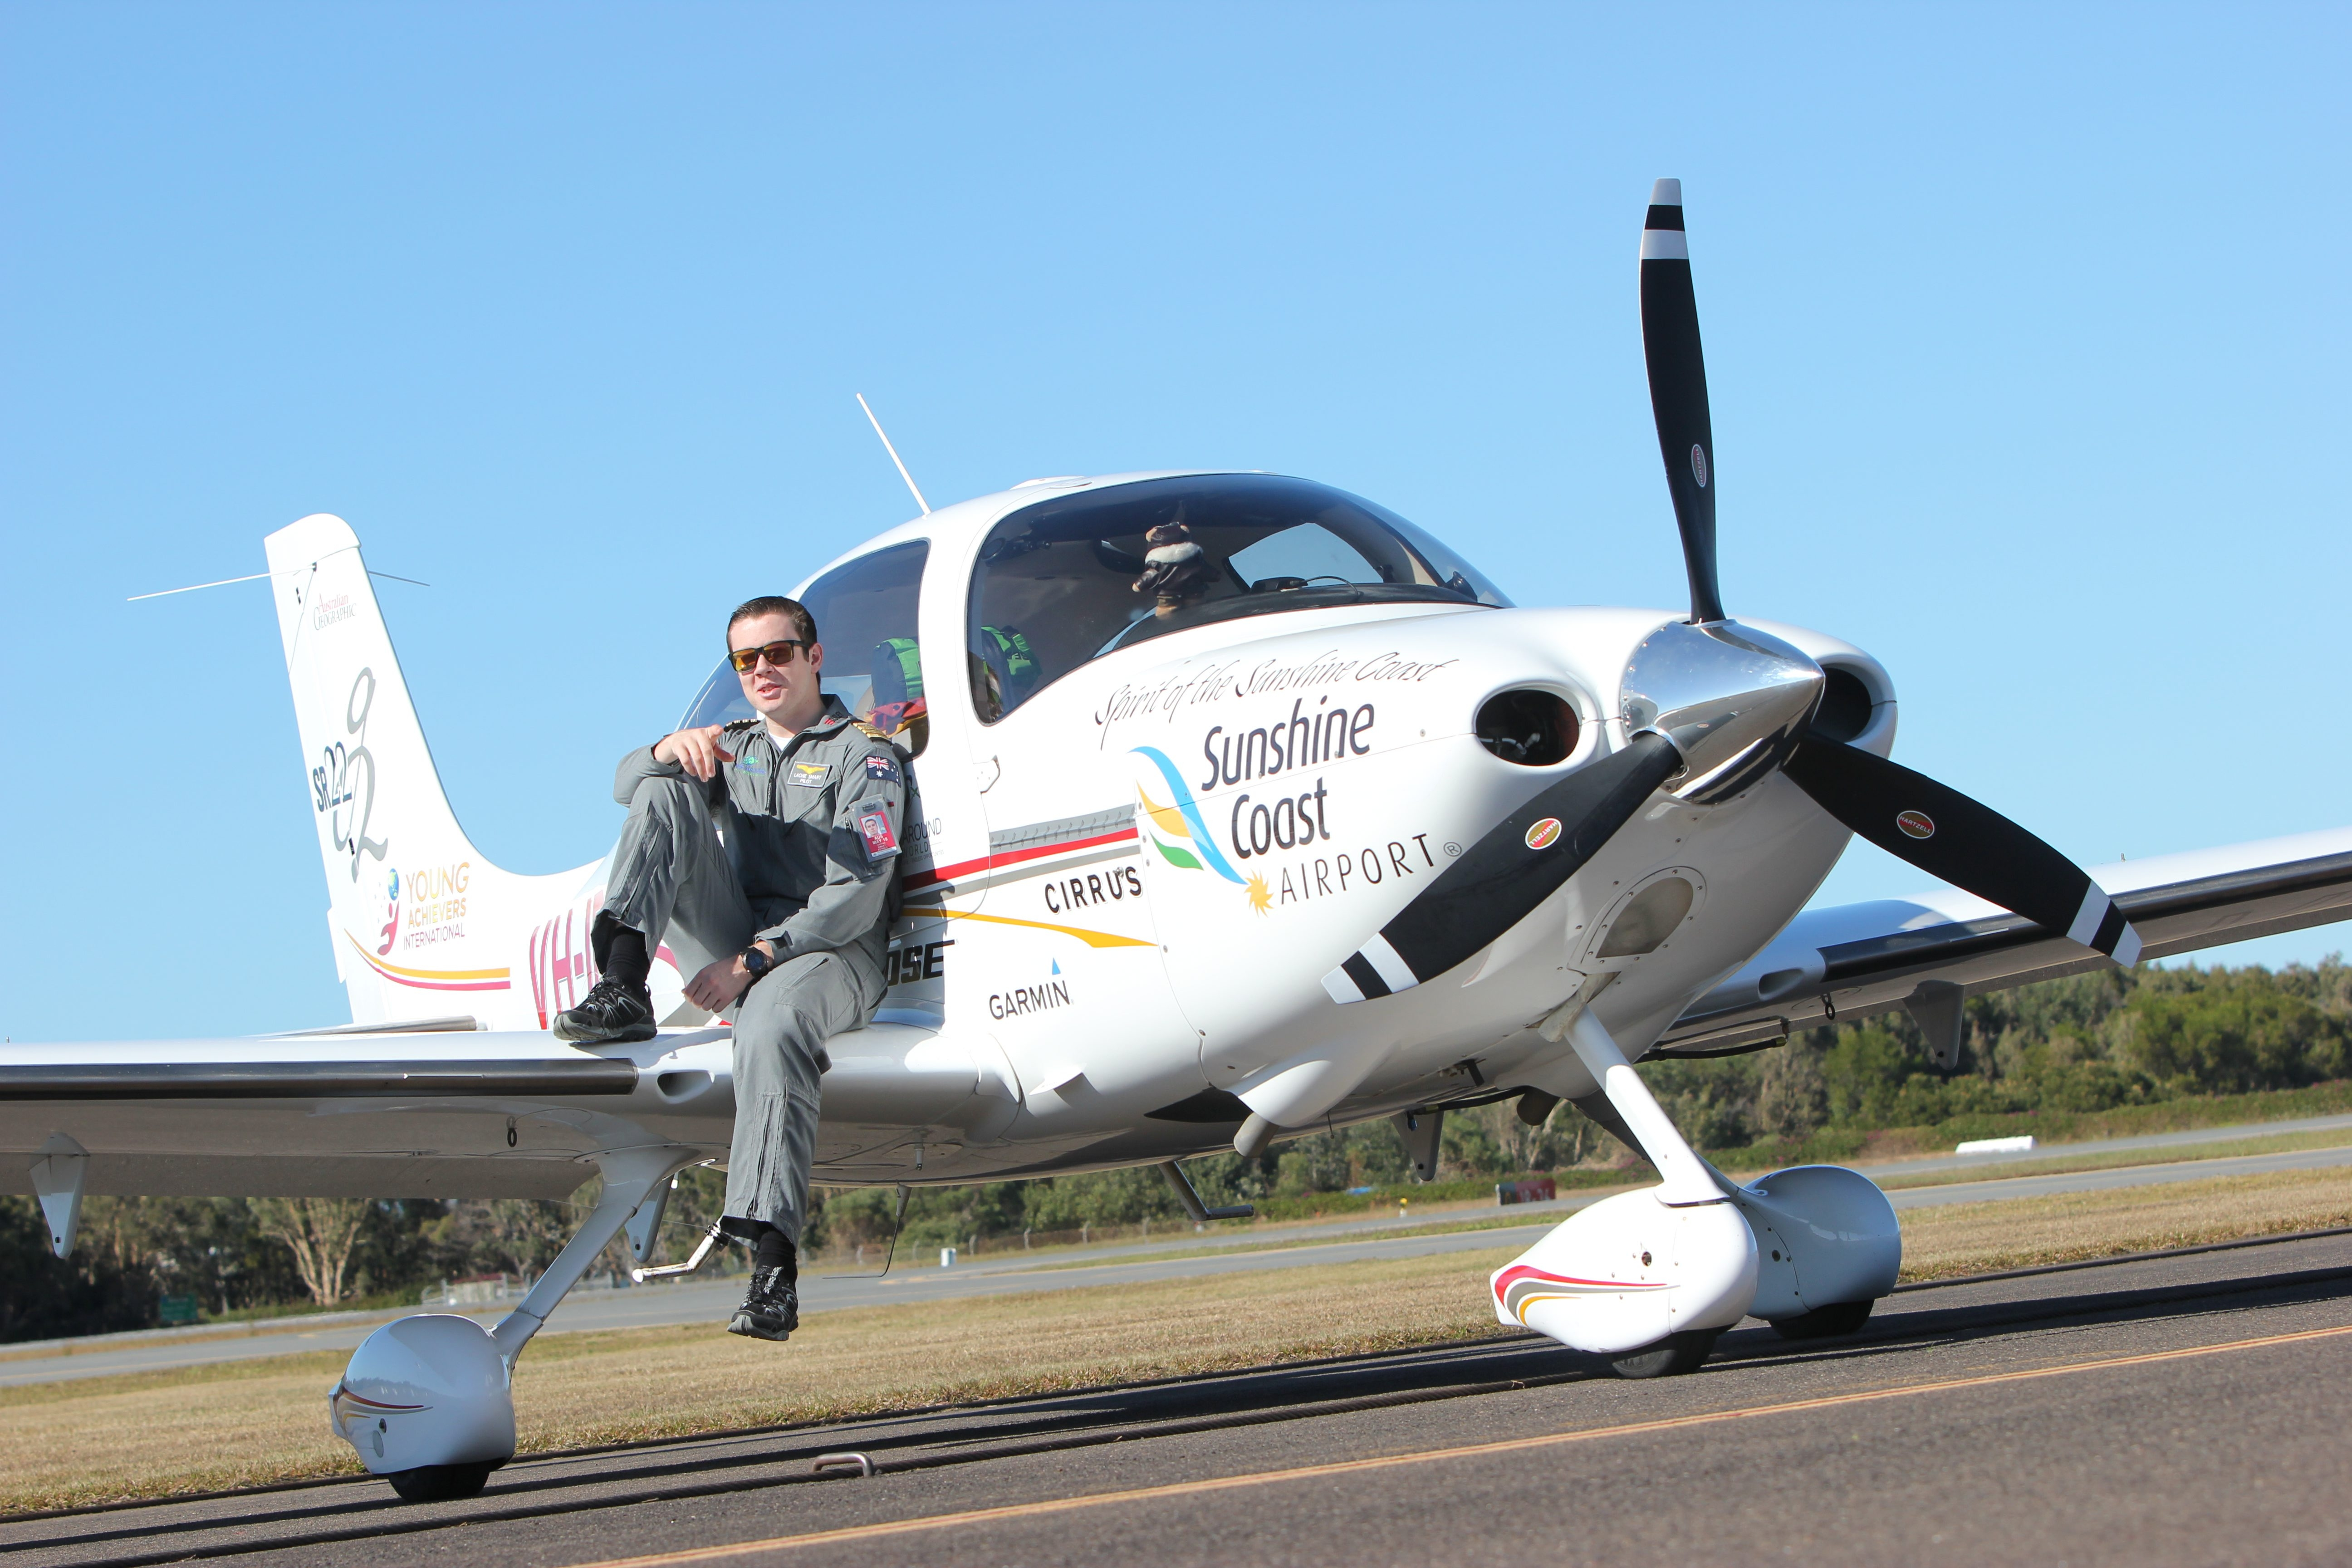 Australian teen pilot Lachlan Smart landed in Niagara Falls on Tuesday as part of his round-the-world odyssey. (Photo courtesy of Wings Around The World)